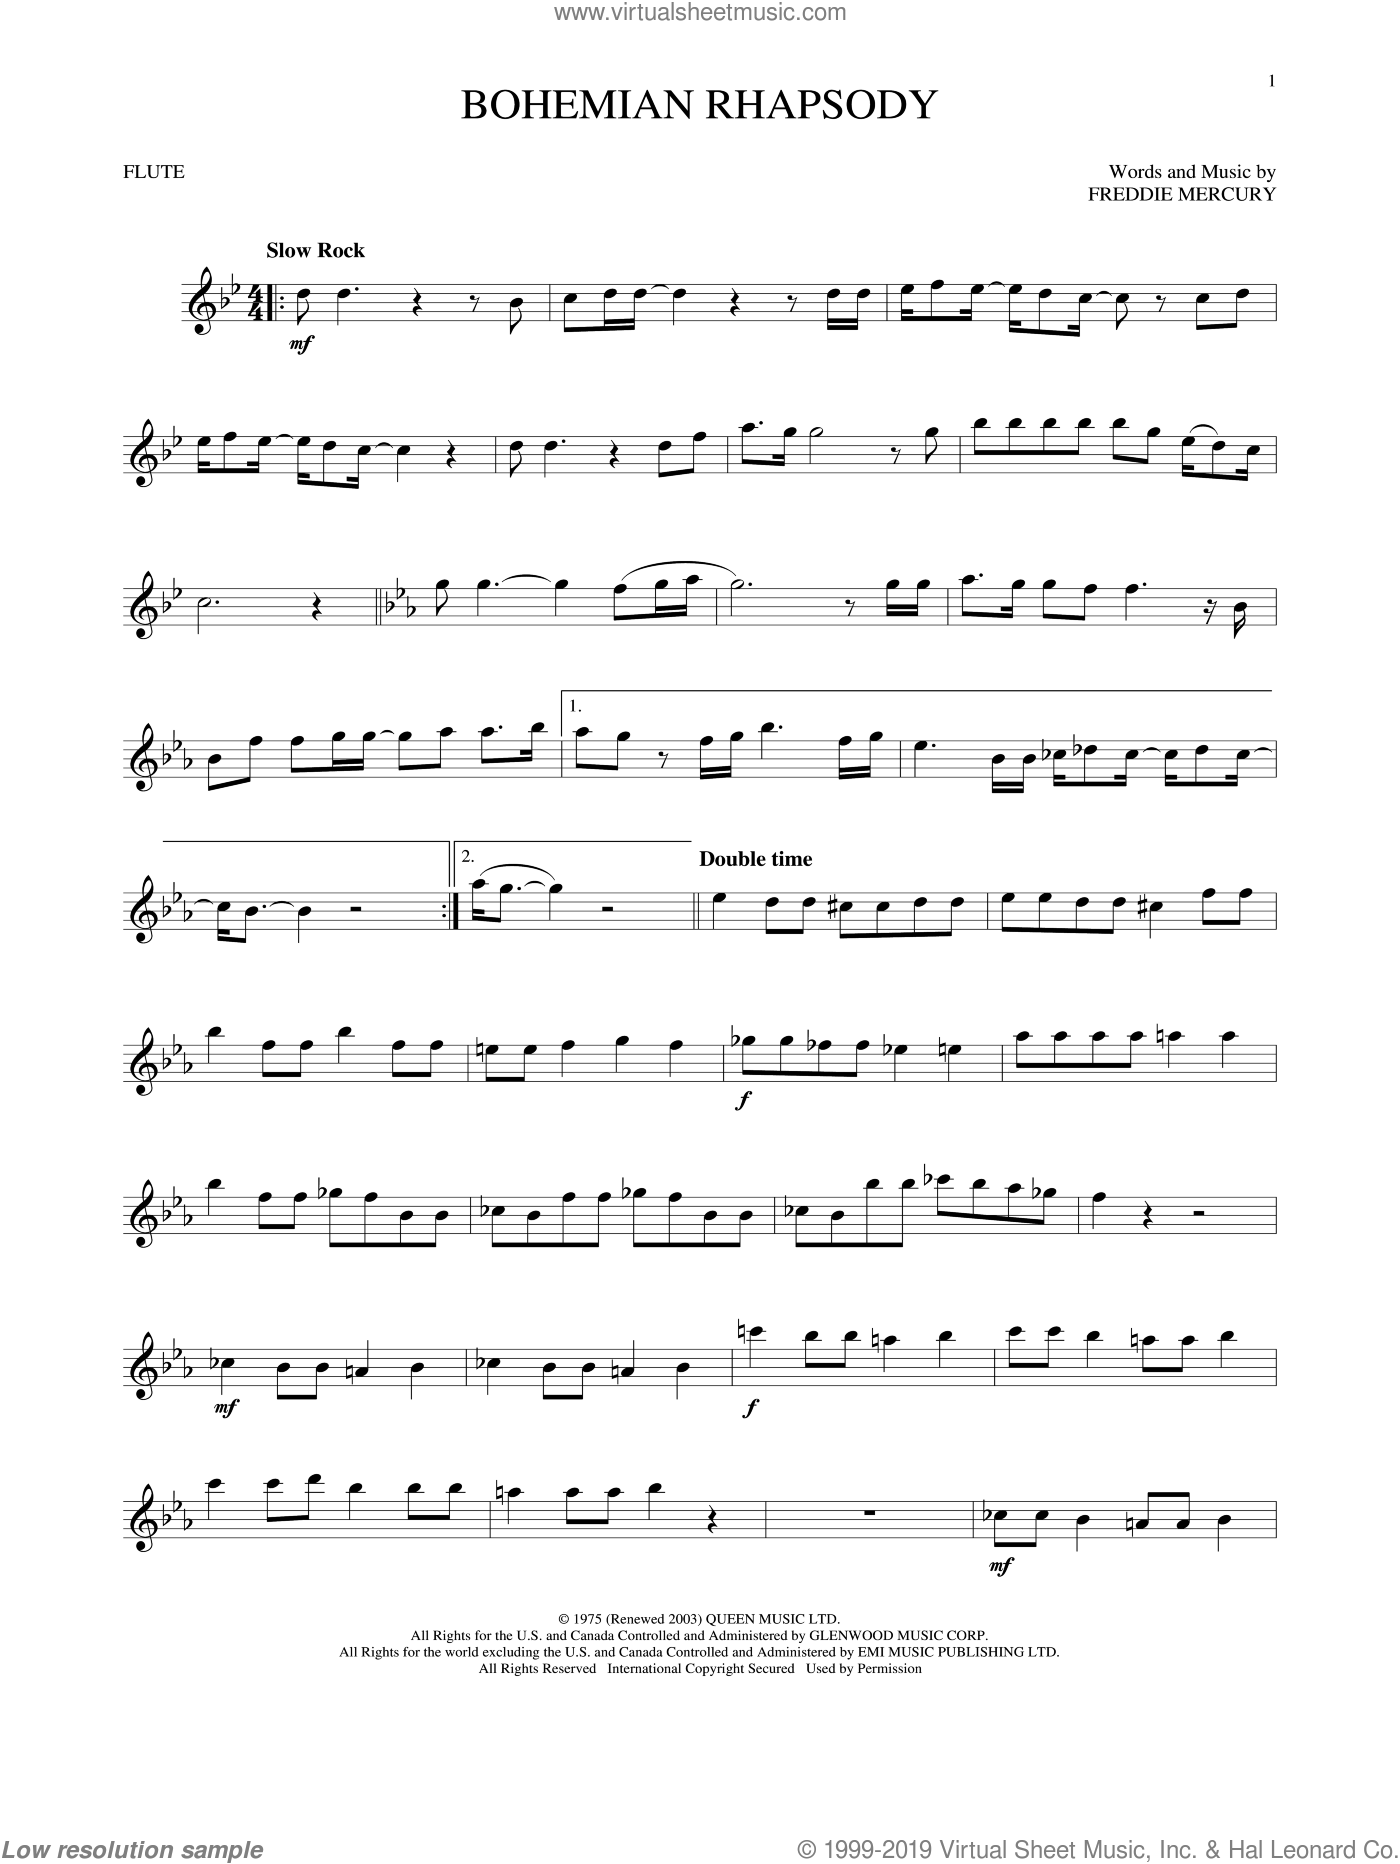 Bohemian Rhapsody sheet music for flute solo by Queen, intermediate skill level